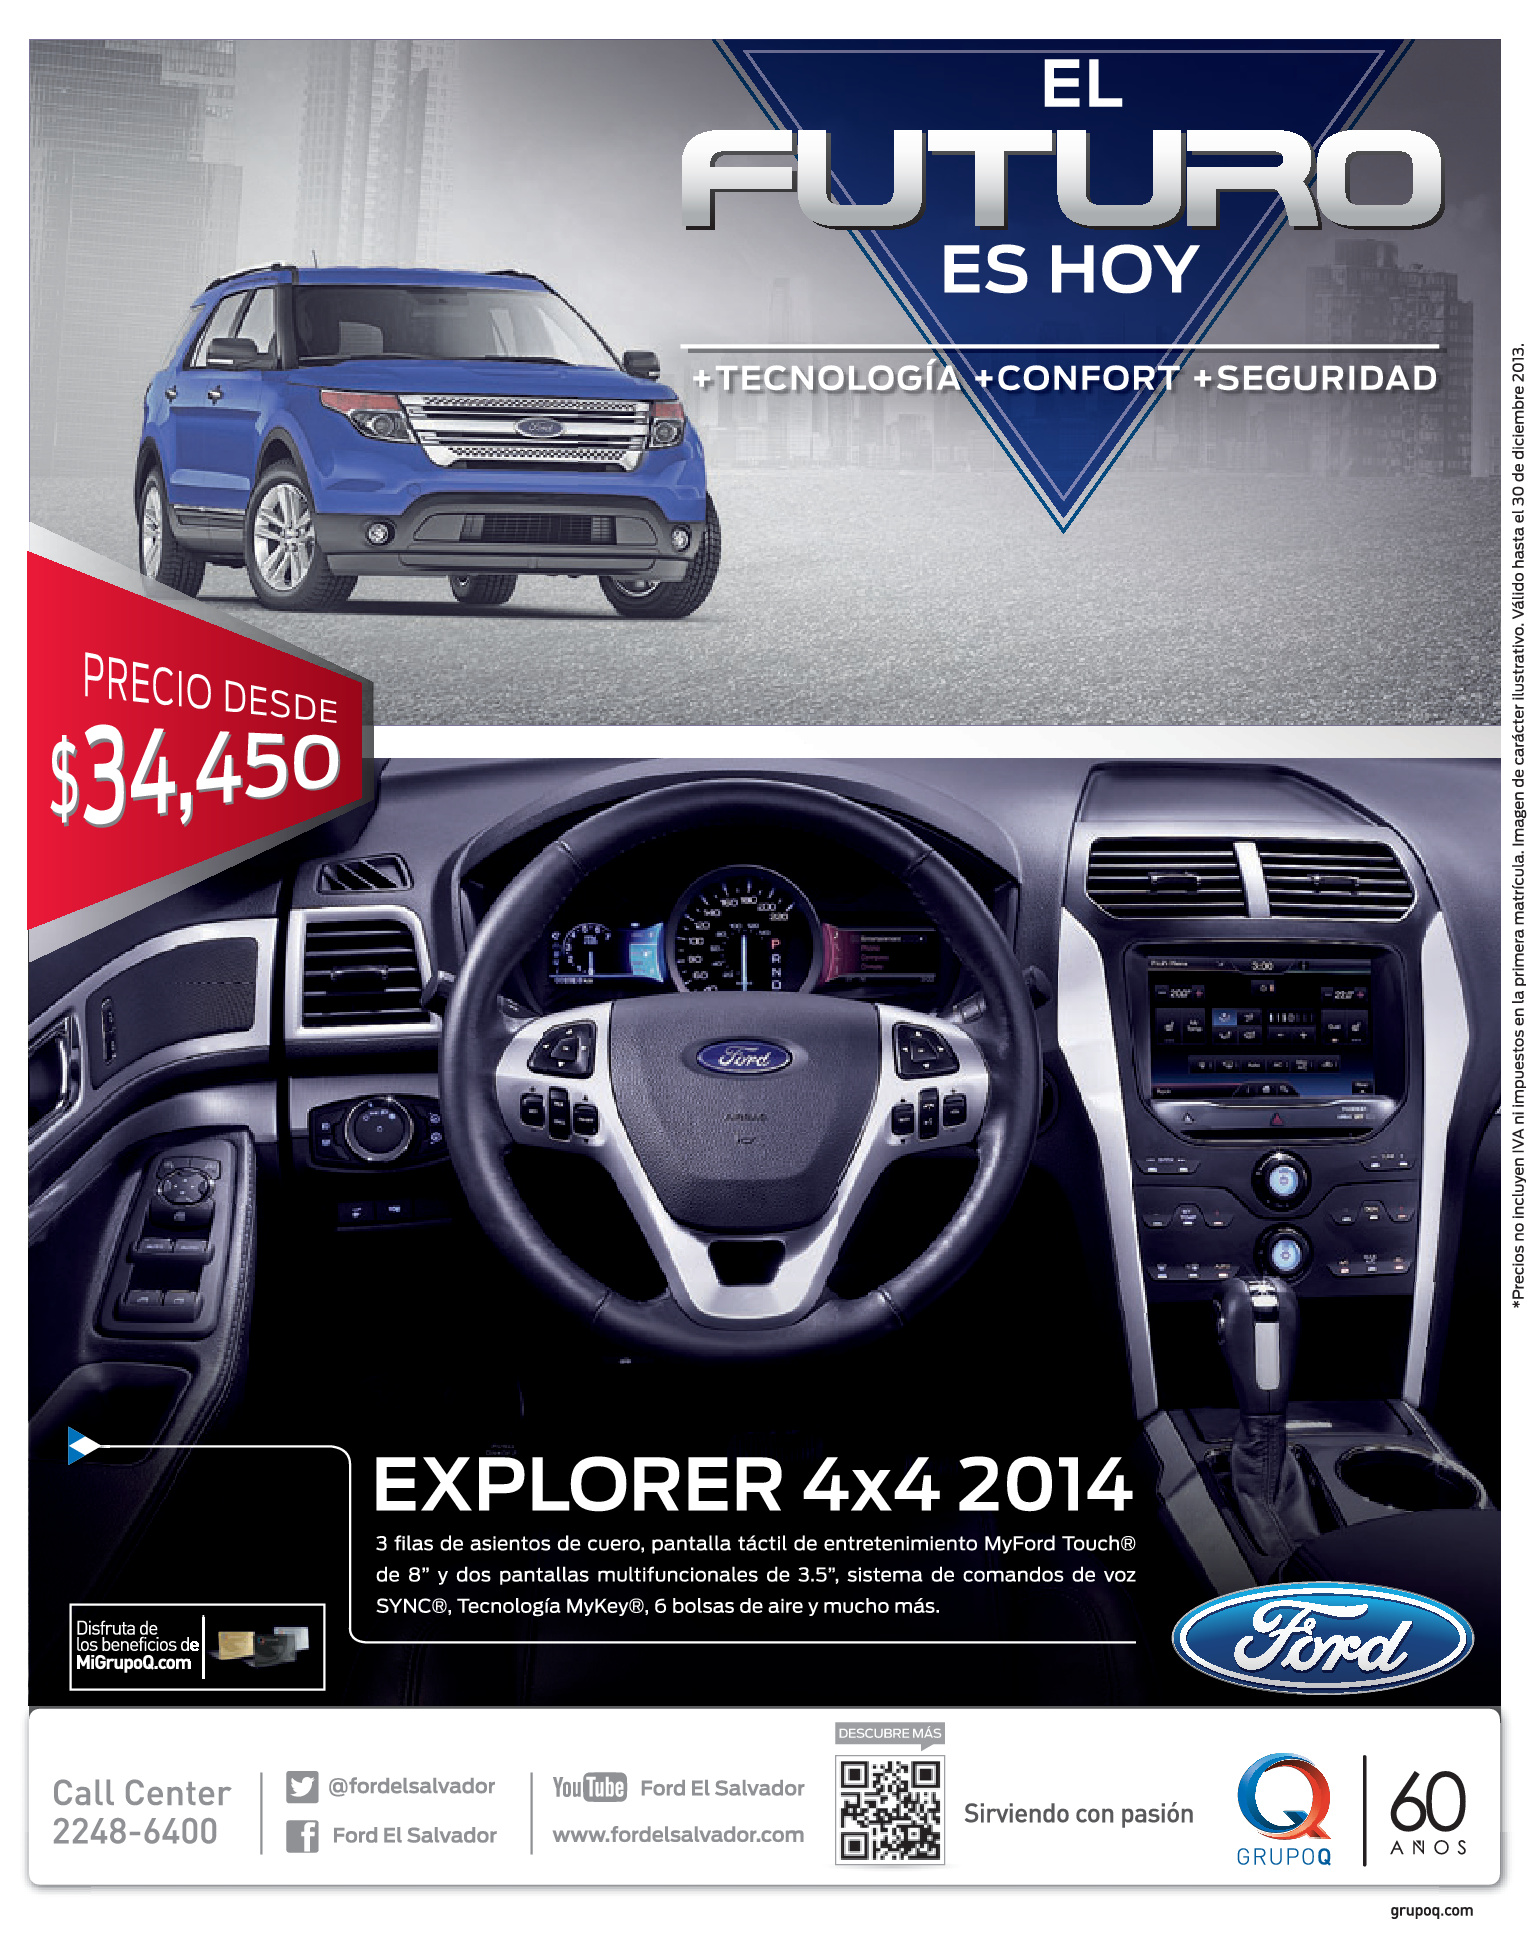 Ford explorer 4x4 2014 promotion grupo q 11dic13 for Ford s fish shack menu